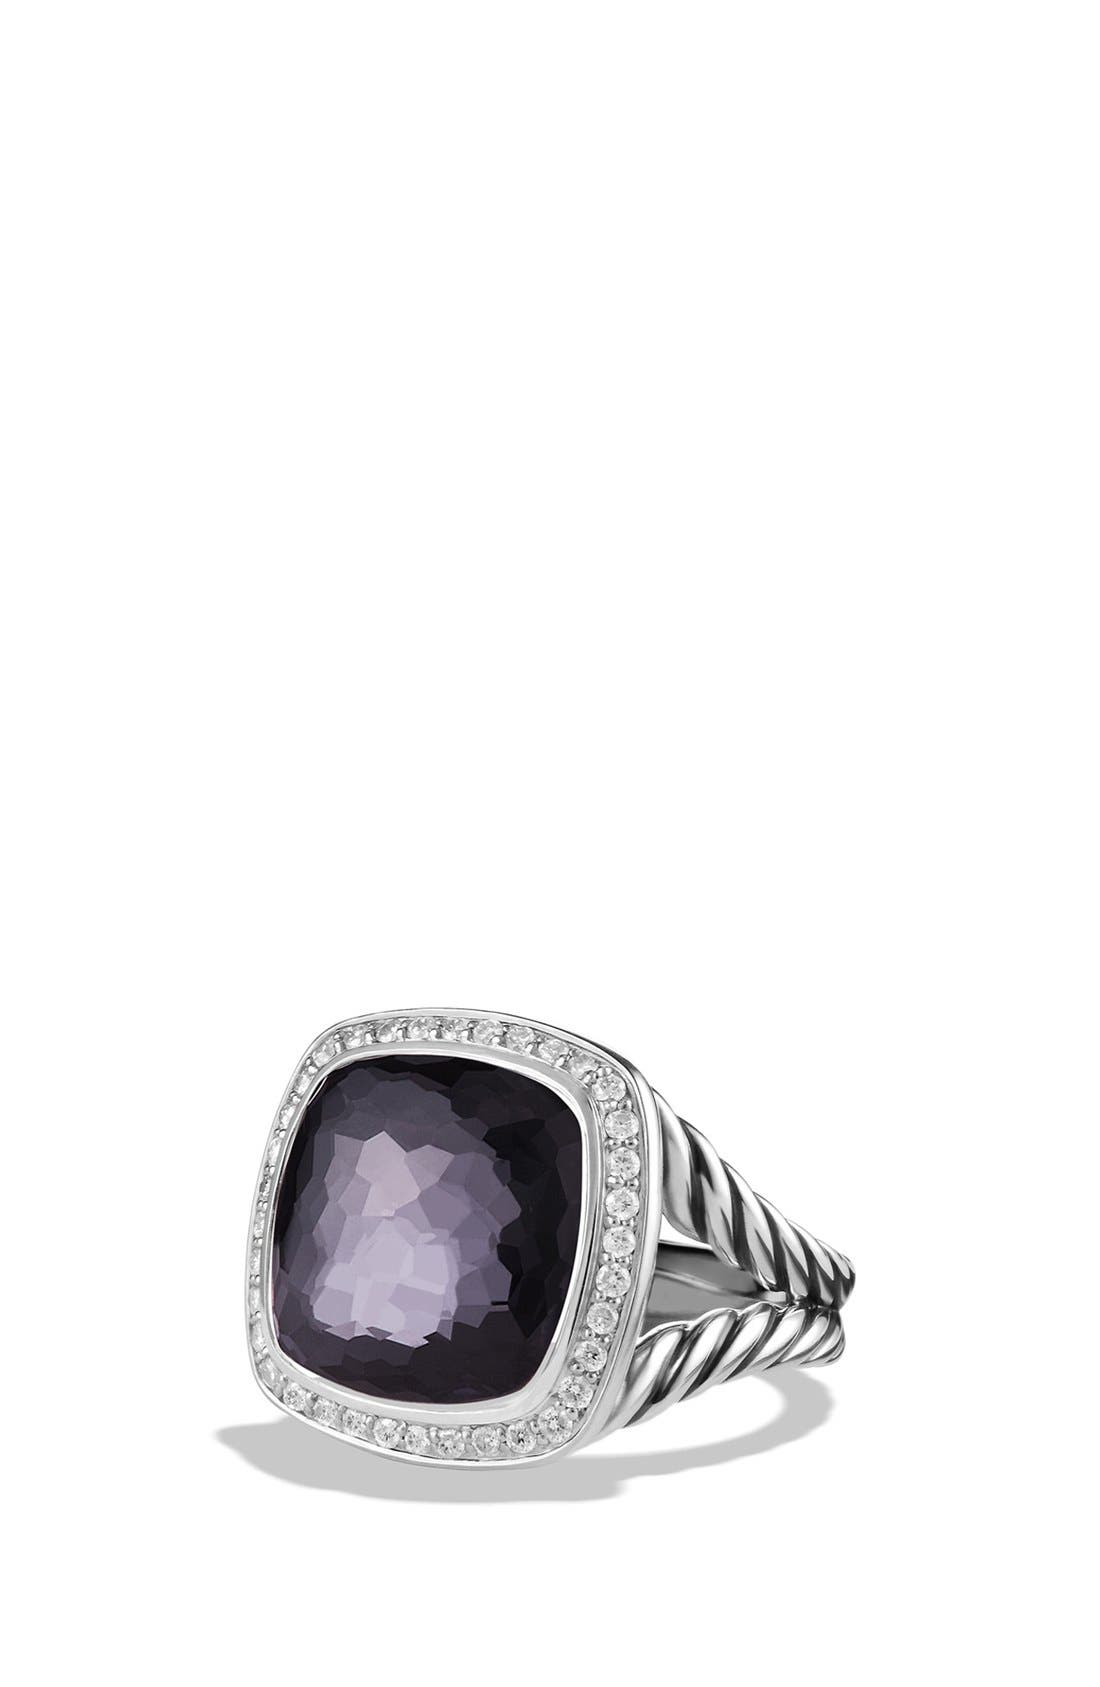 'Albion' Ring with Semiprecious Stone and Diamonds,                             Main thumbnail 1, color,                             Amethyst/ Hematine